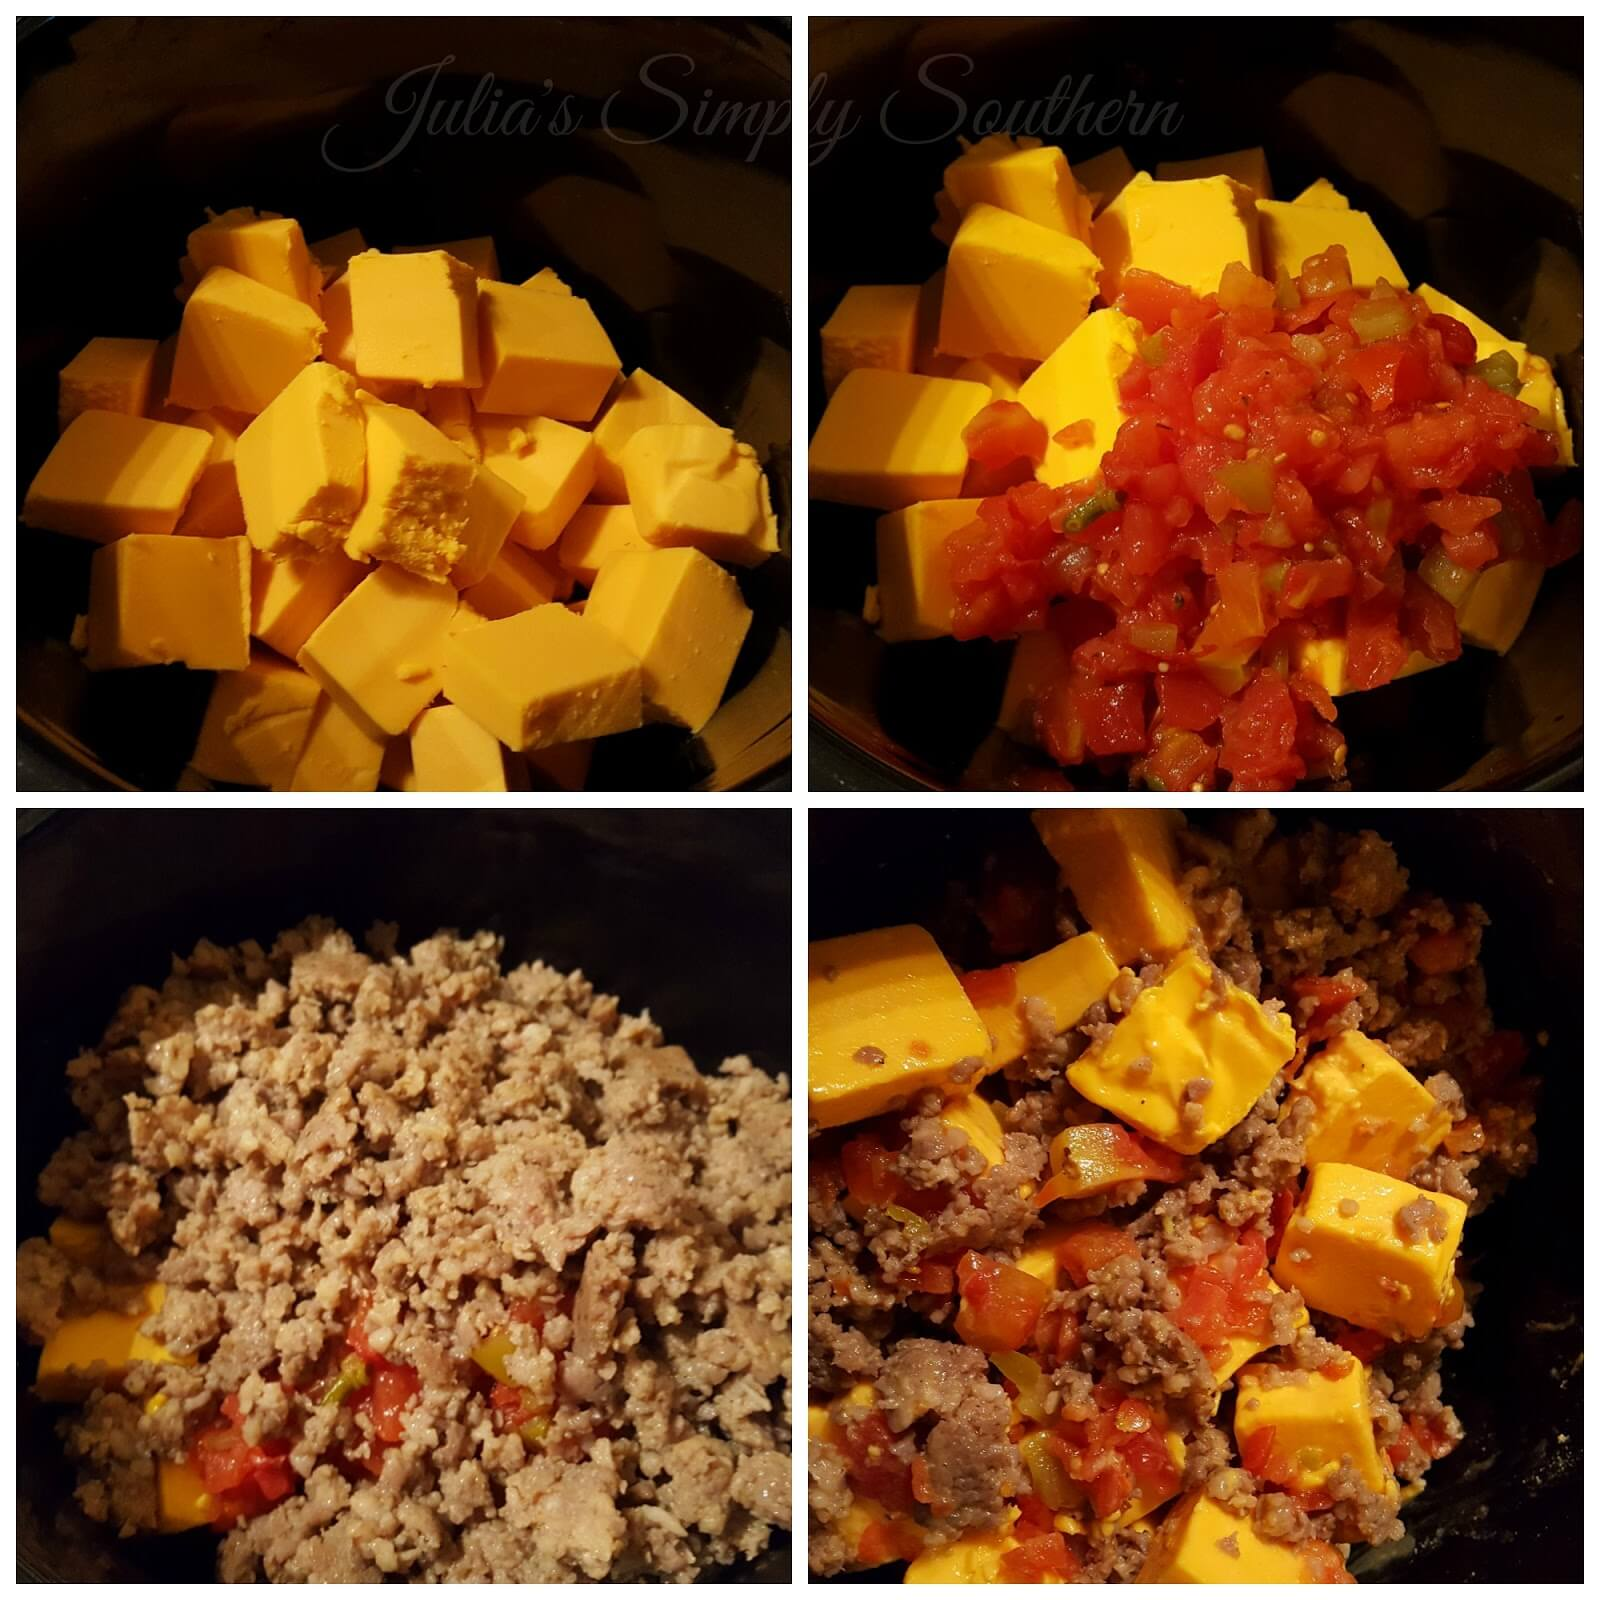 How to make Sausage queso dip with Rotel in the slow cooker